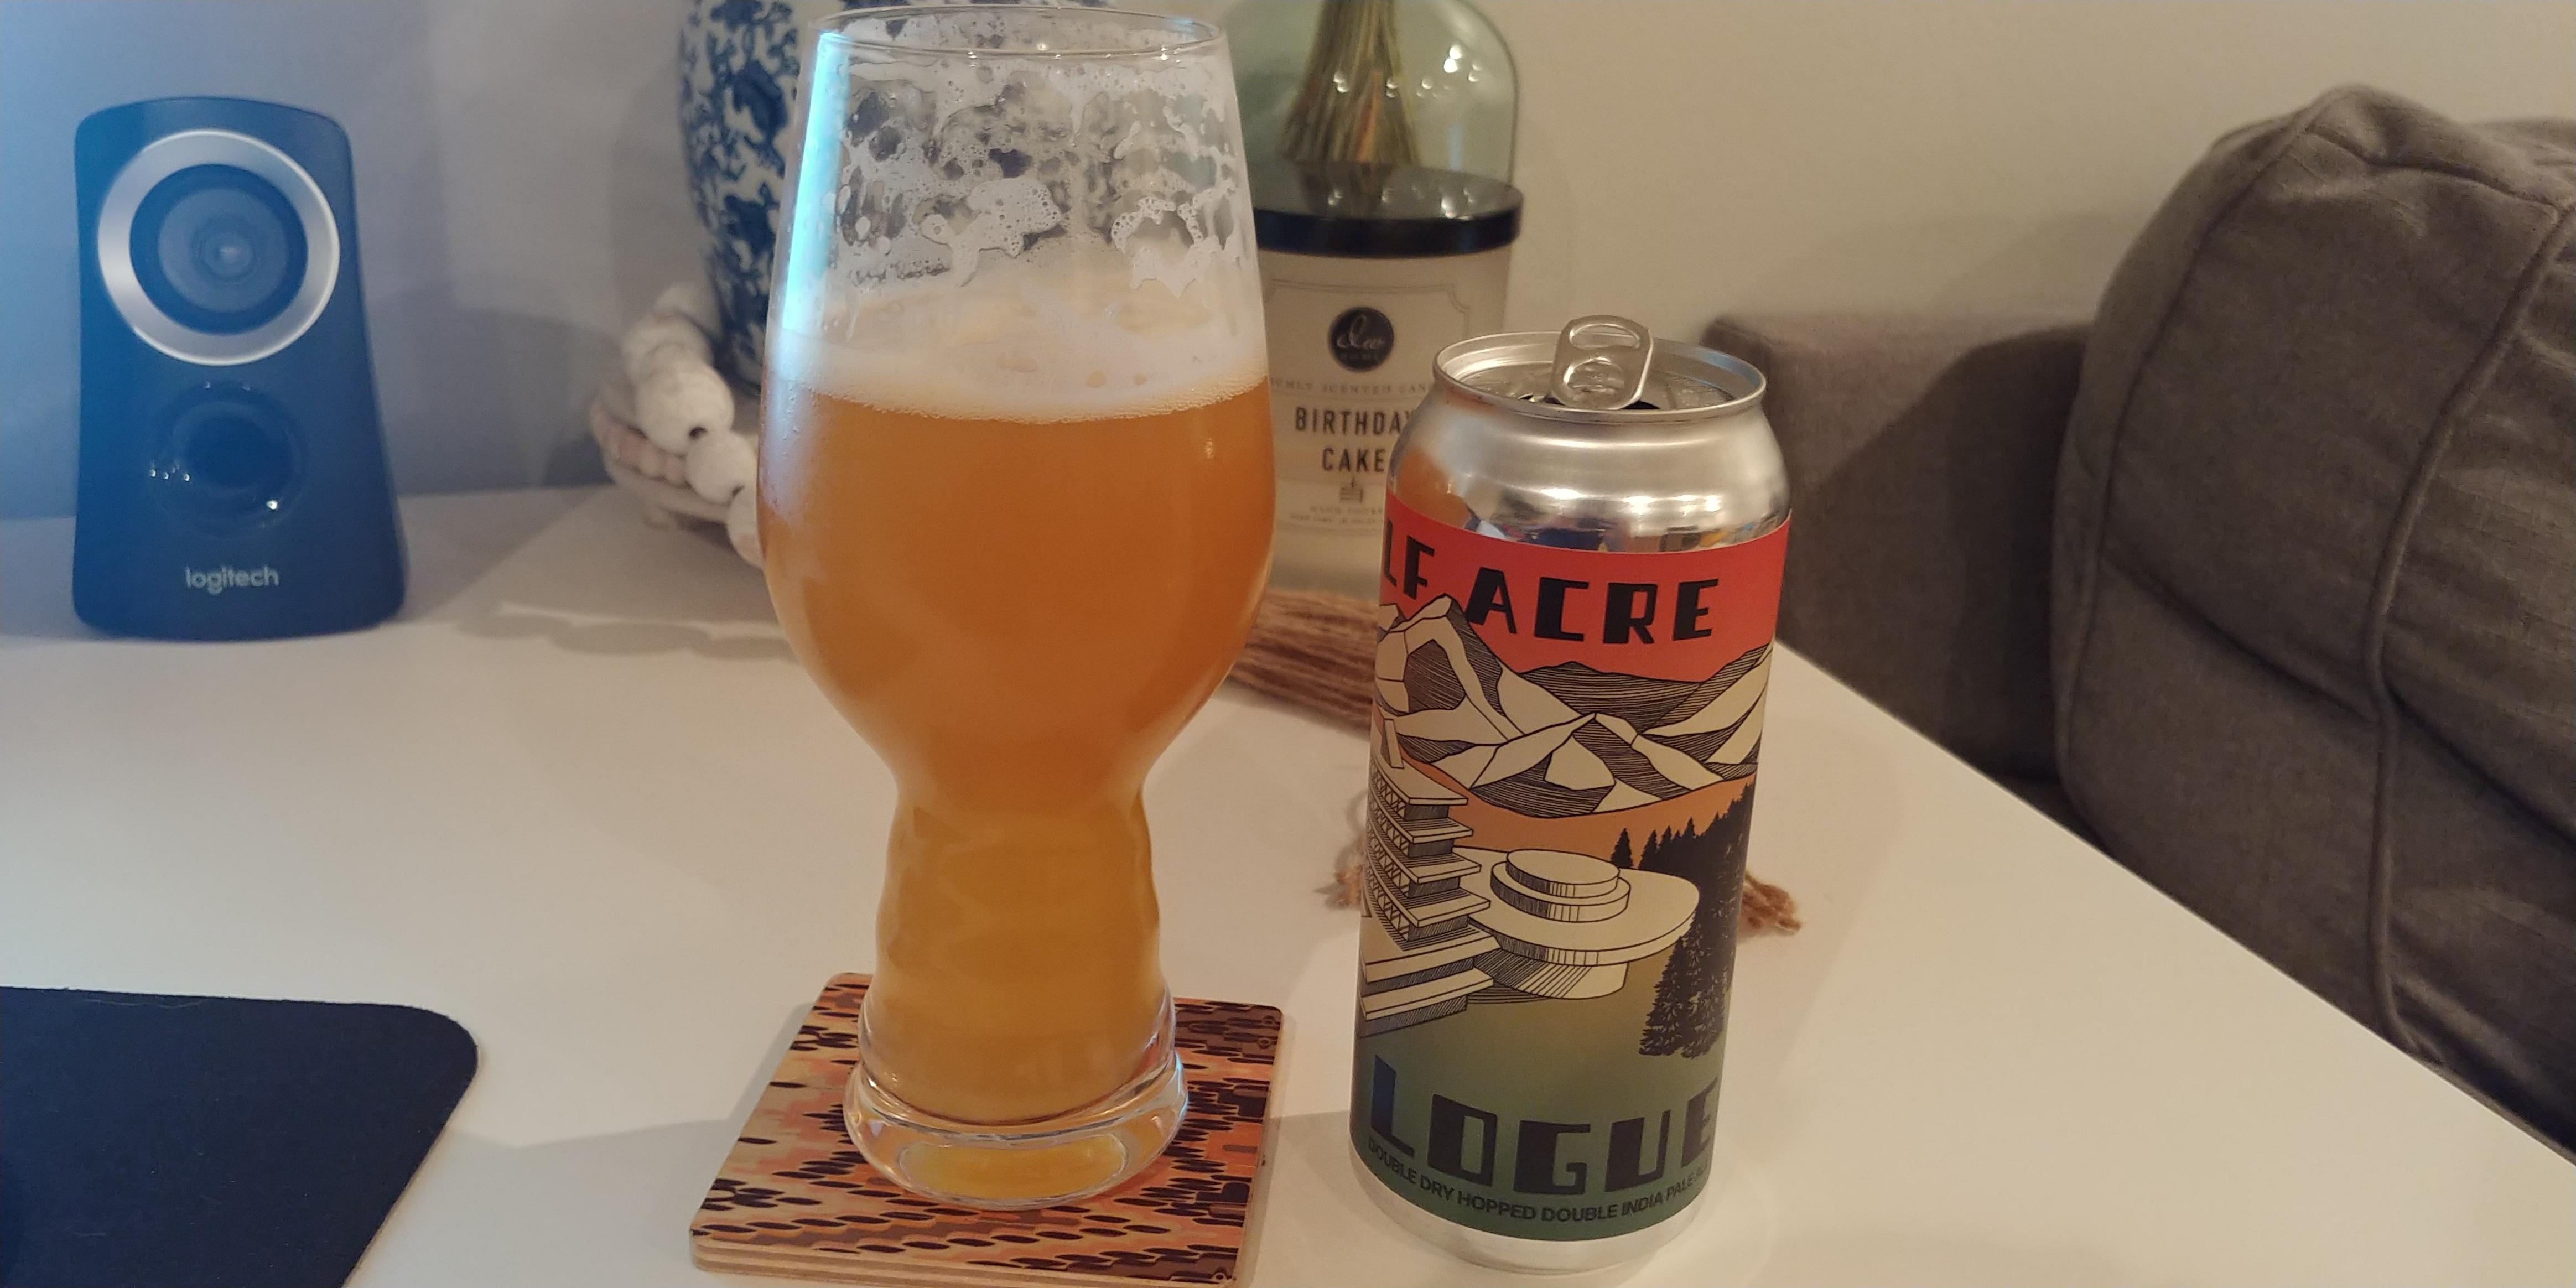 Half Acre Logue Beer Review